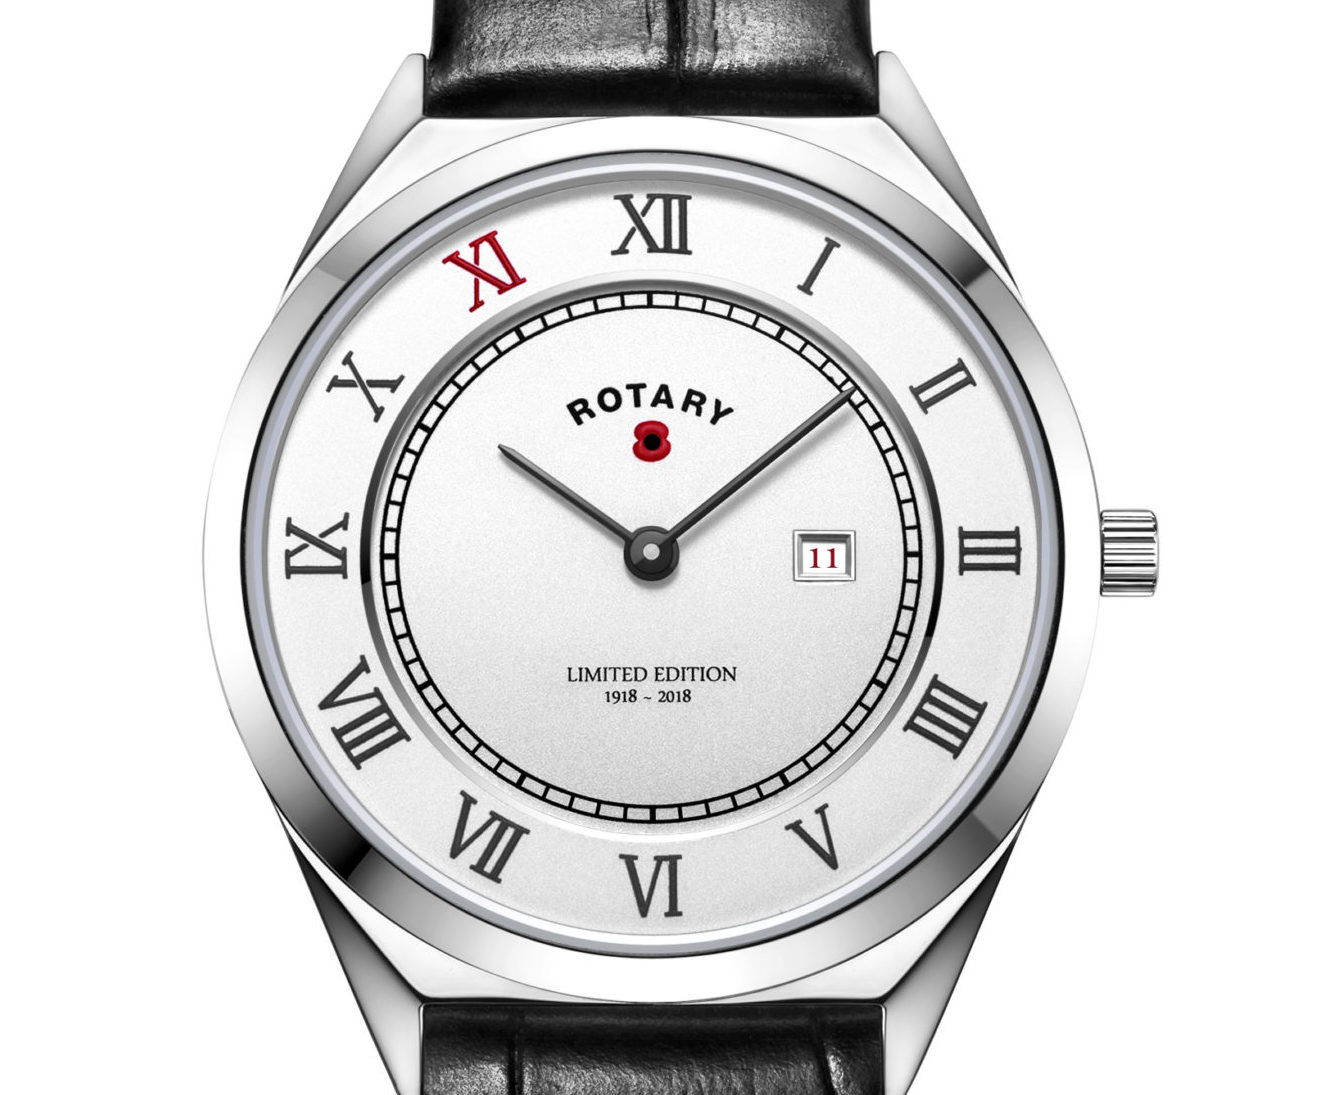 FWW limited edition centenary watch (2)